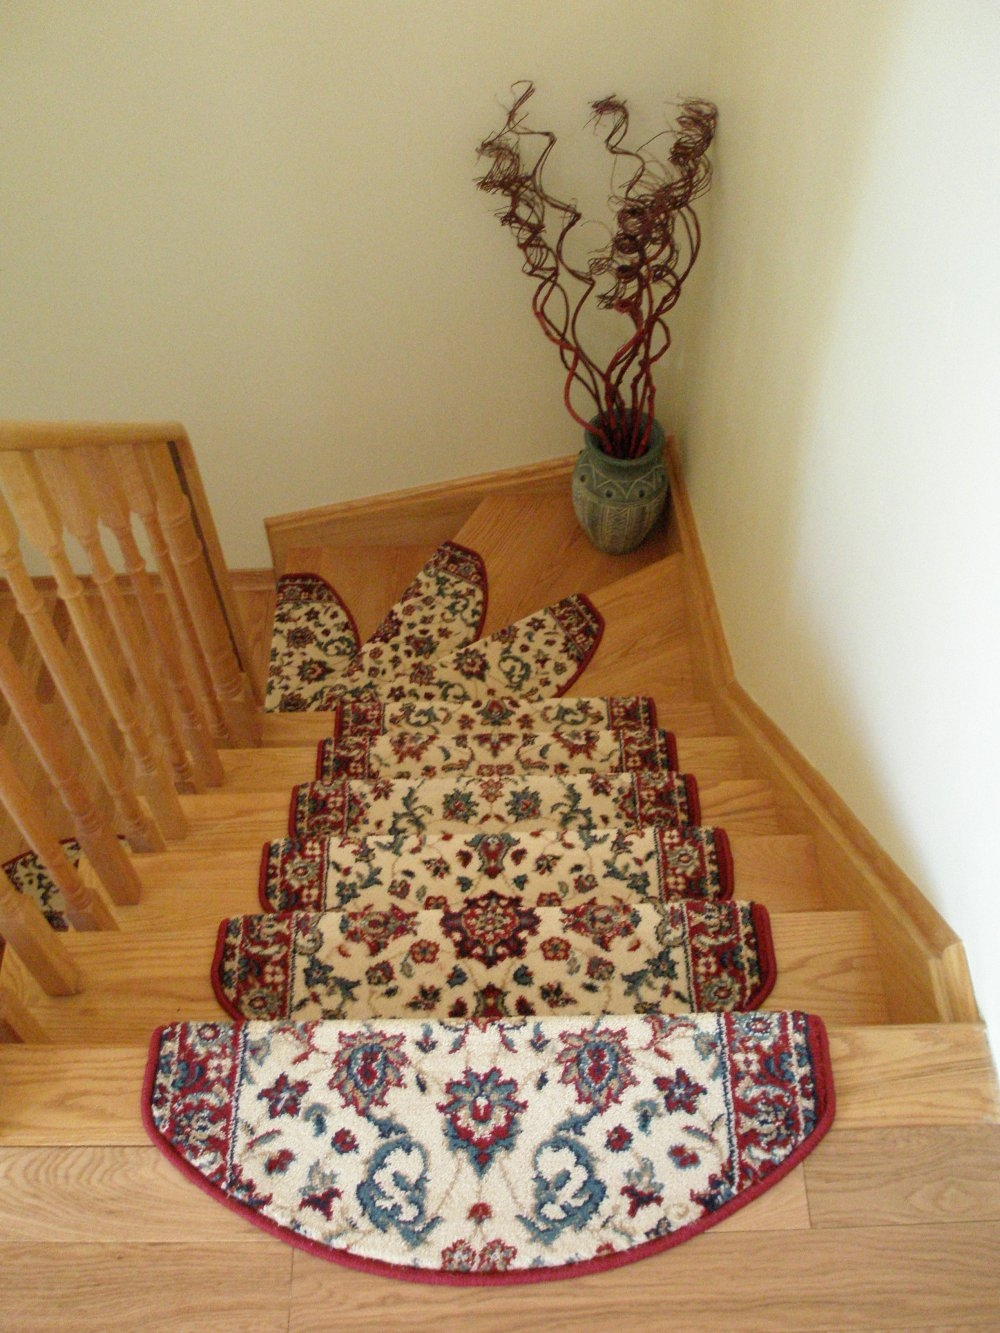 Carpet Stair Treads Stair Mats Stair Rugs Regarding Stair Tread Rugs For Carpet (View 11 of 15)